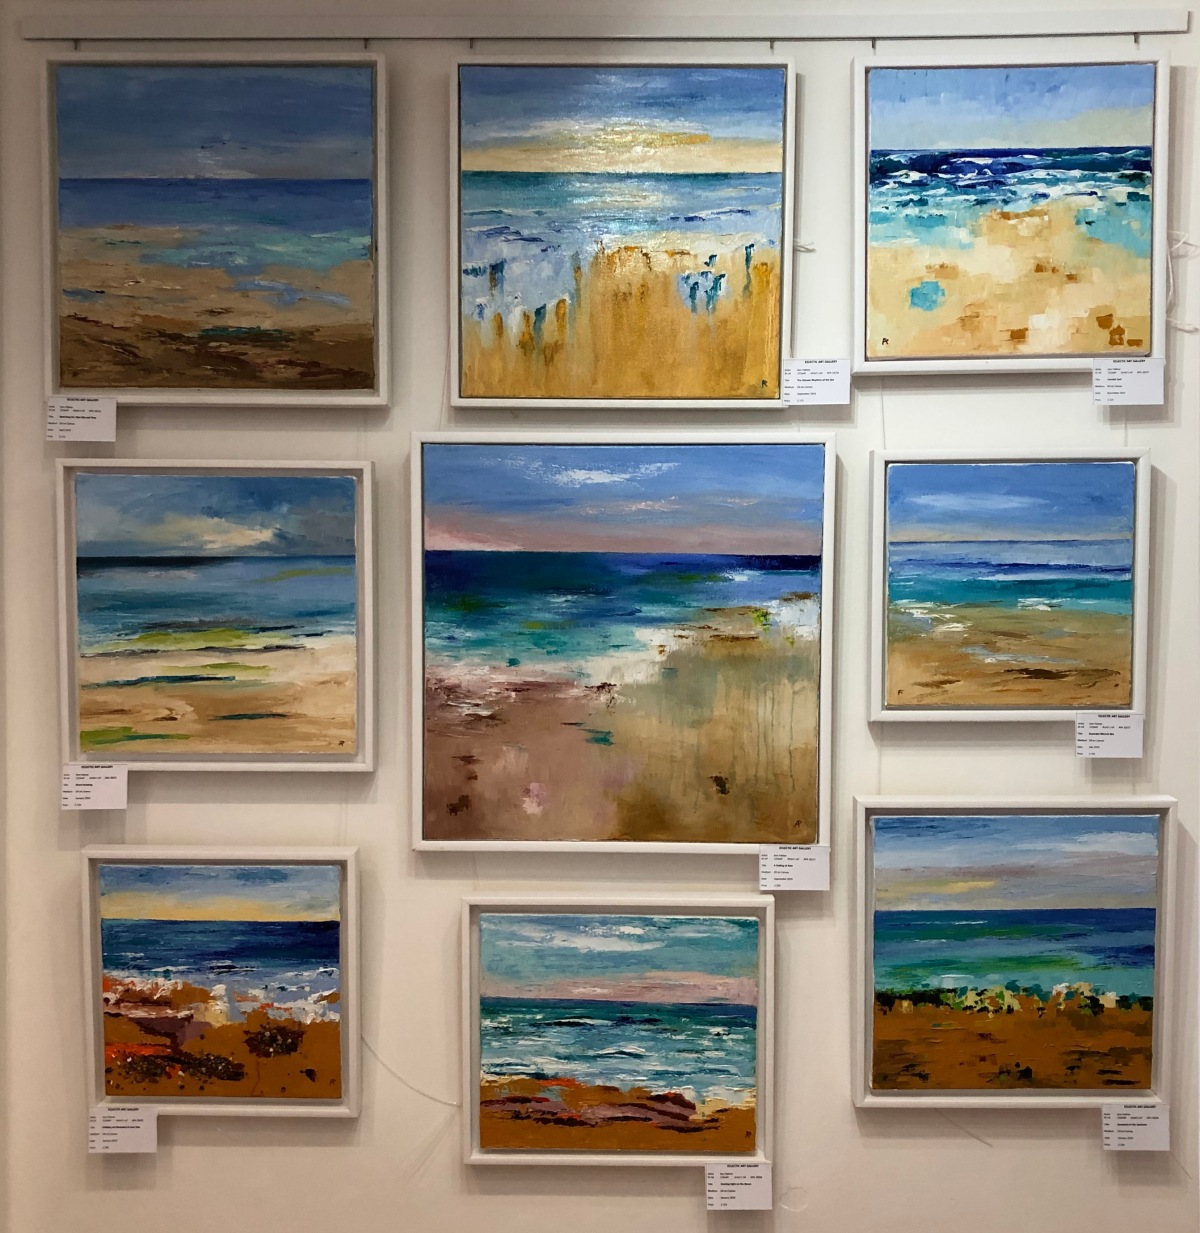 Current exhibition in Margate